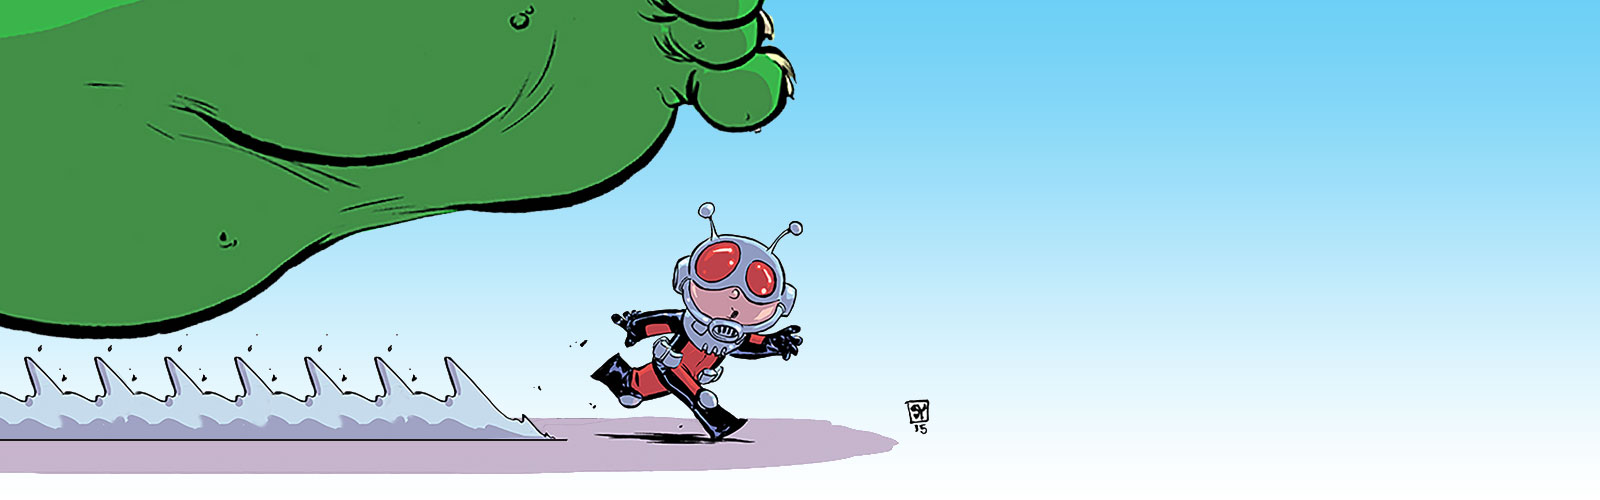 Ant-Man and the Hulk by Skottie Young